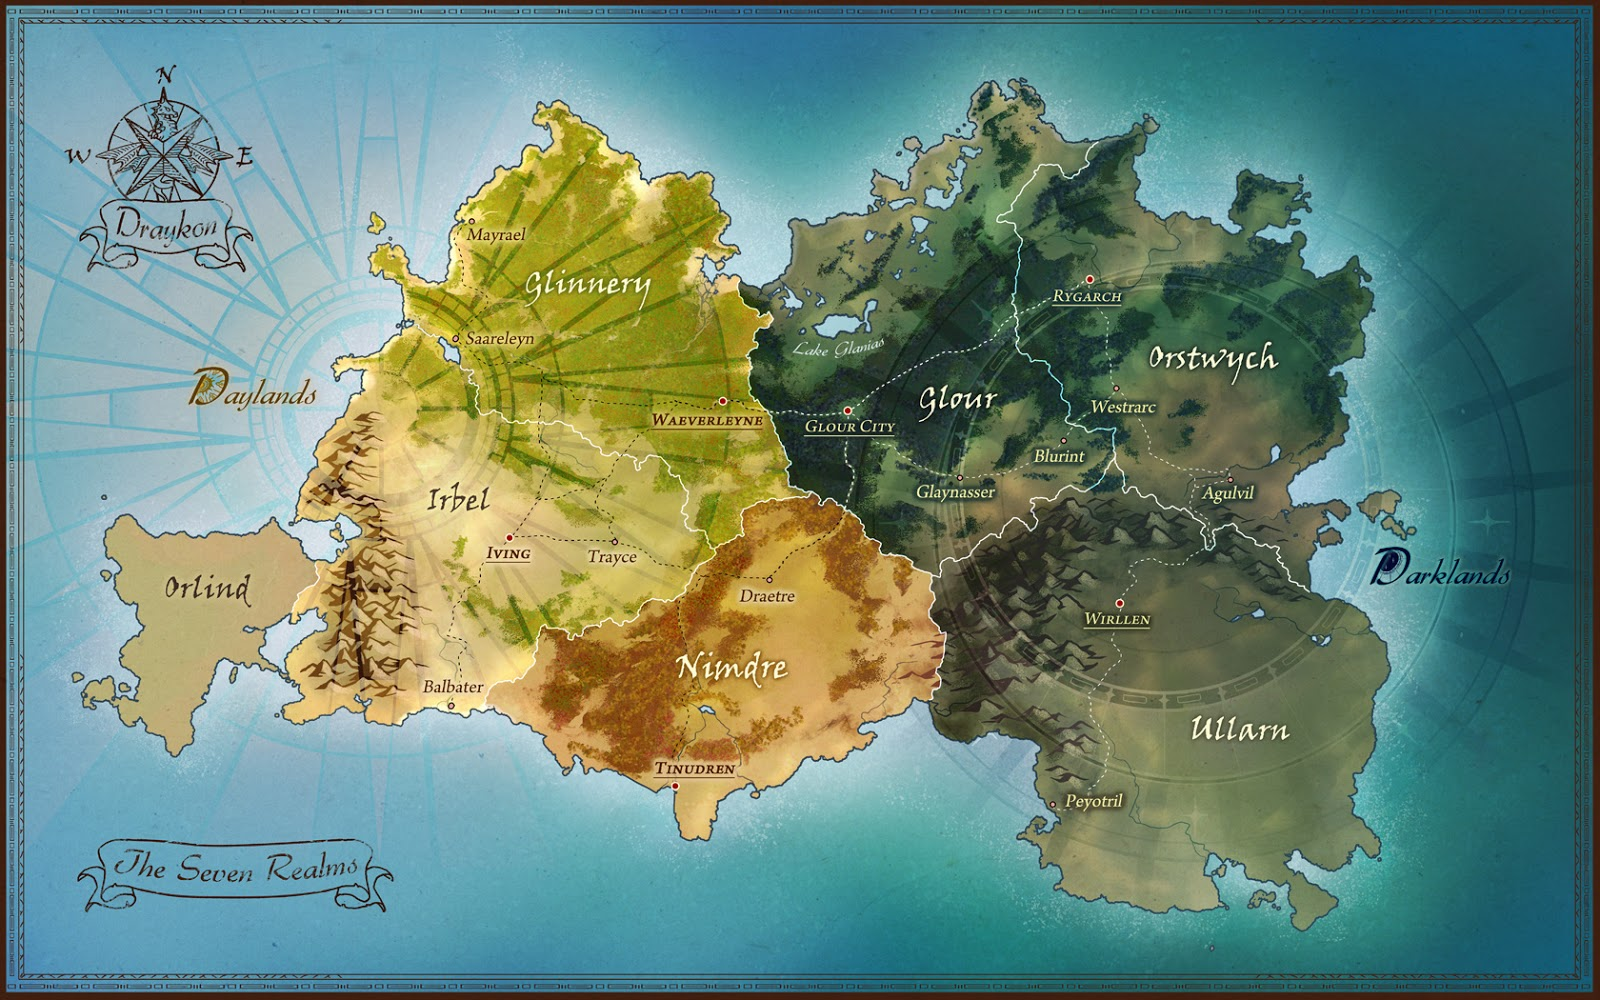 Fantasy book critic guest post stepping off the map of the world hello you may remember me from the drifting isle chronicles discussions in april ive been asked to talk to you about some of my other books gumiabroncs Choice Image